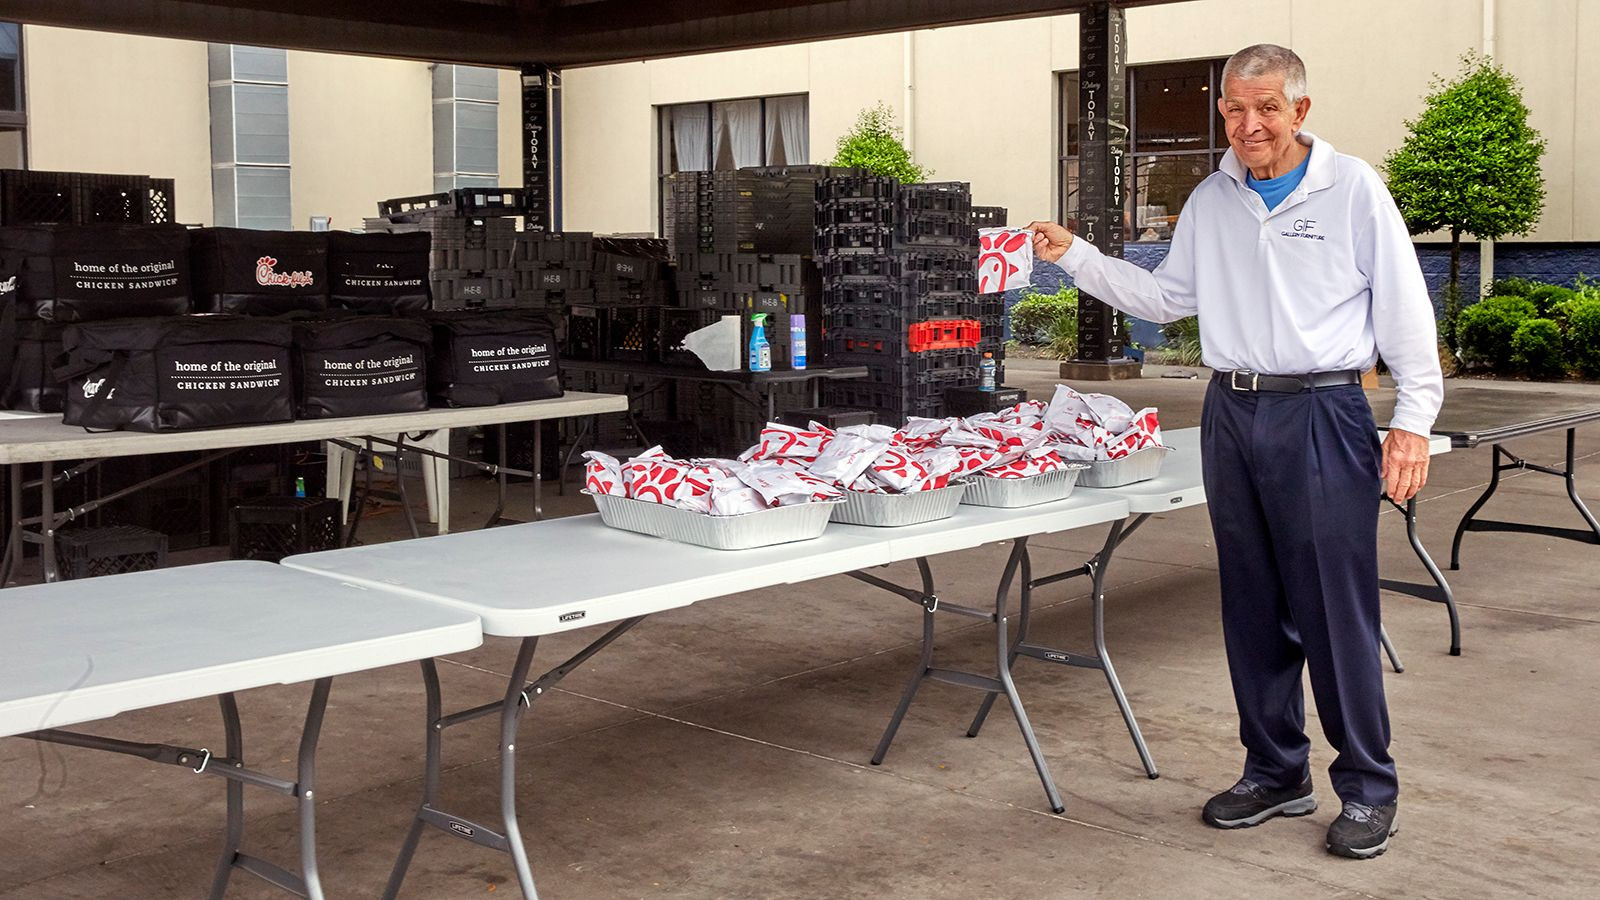 Hot meals for Houstonians in need during Covid 19